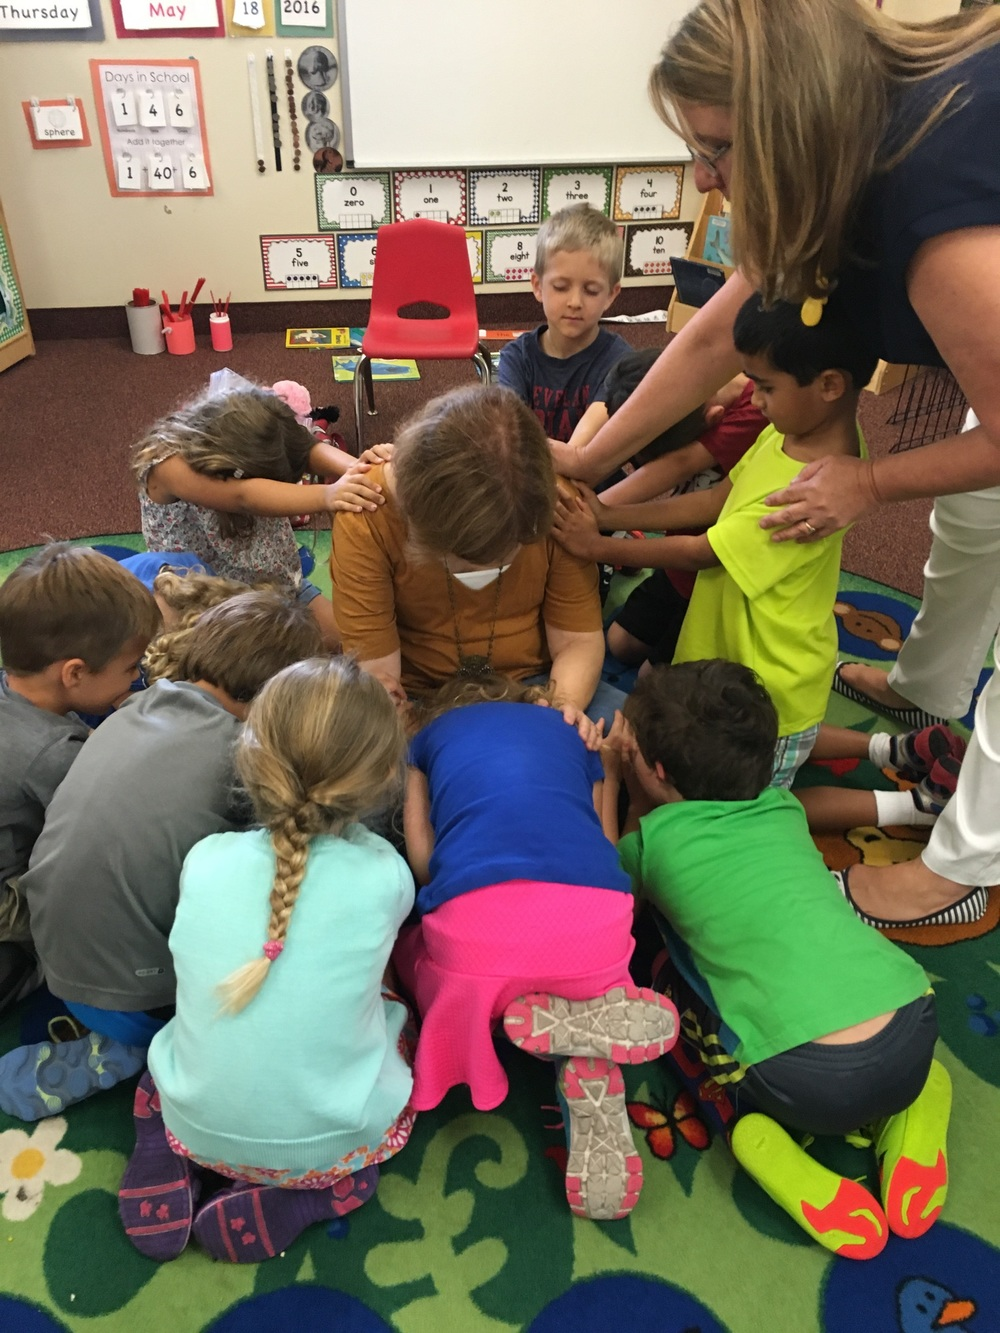 Today at Maitland Community Preschool, Mrs. Creech's (or Señora Creech, of course) kindergarten class prayed for her as she prepared to go to Israel. What a gift to hear the sweet and sincere prayers of children!